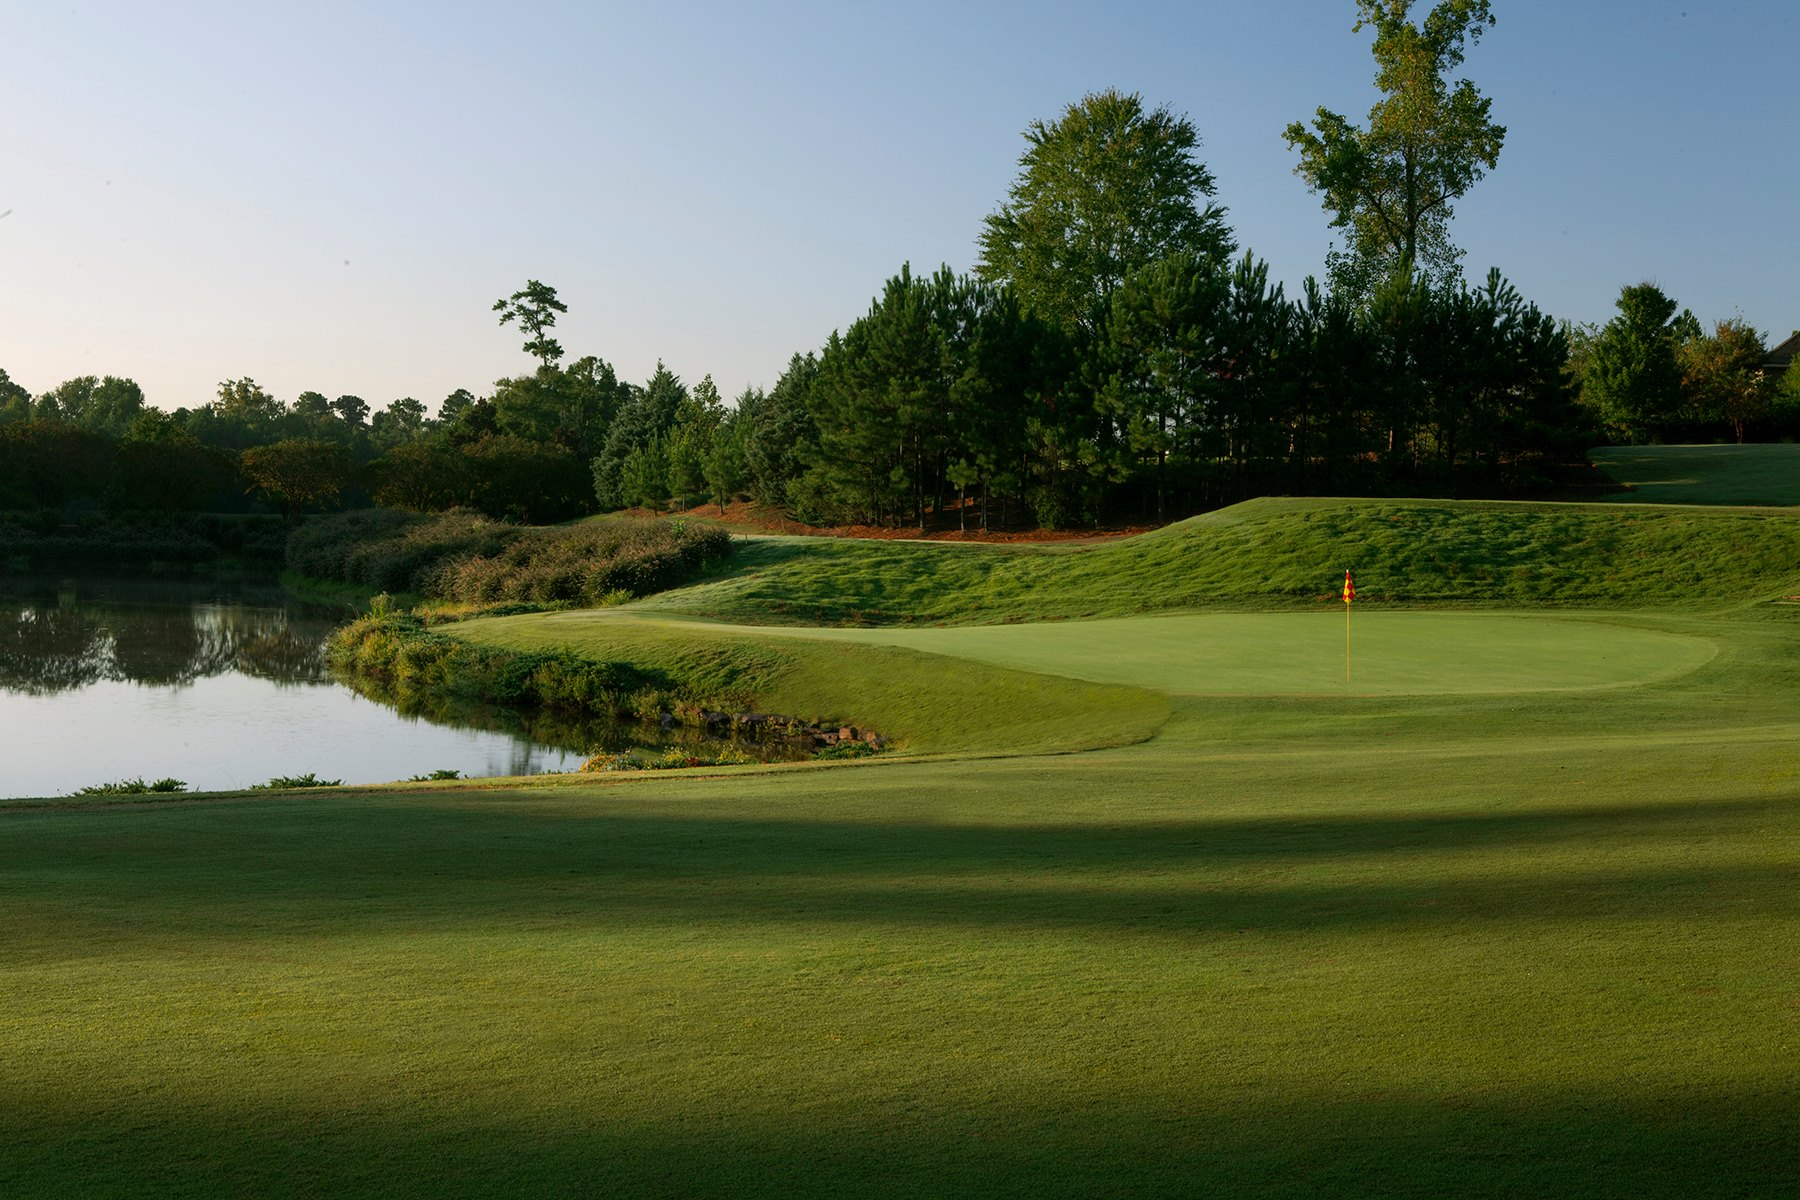 Overview of golf course named Maple Ridge Golf Club